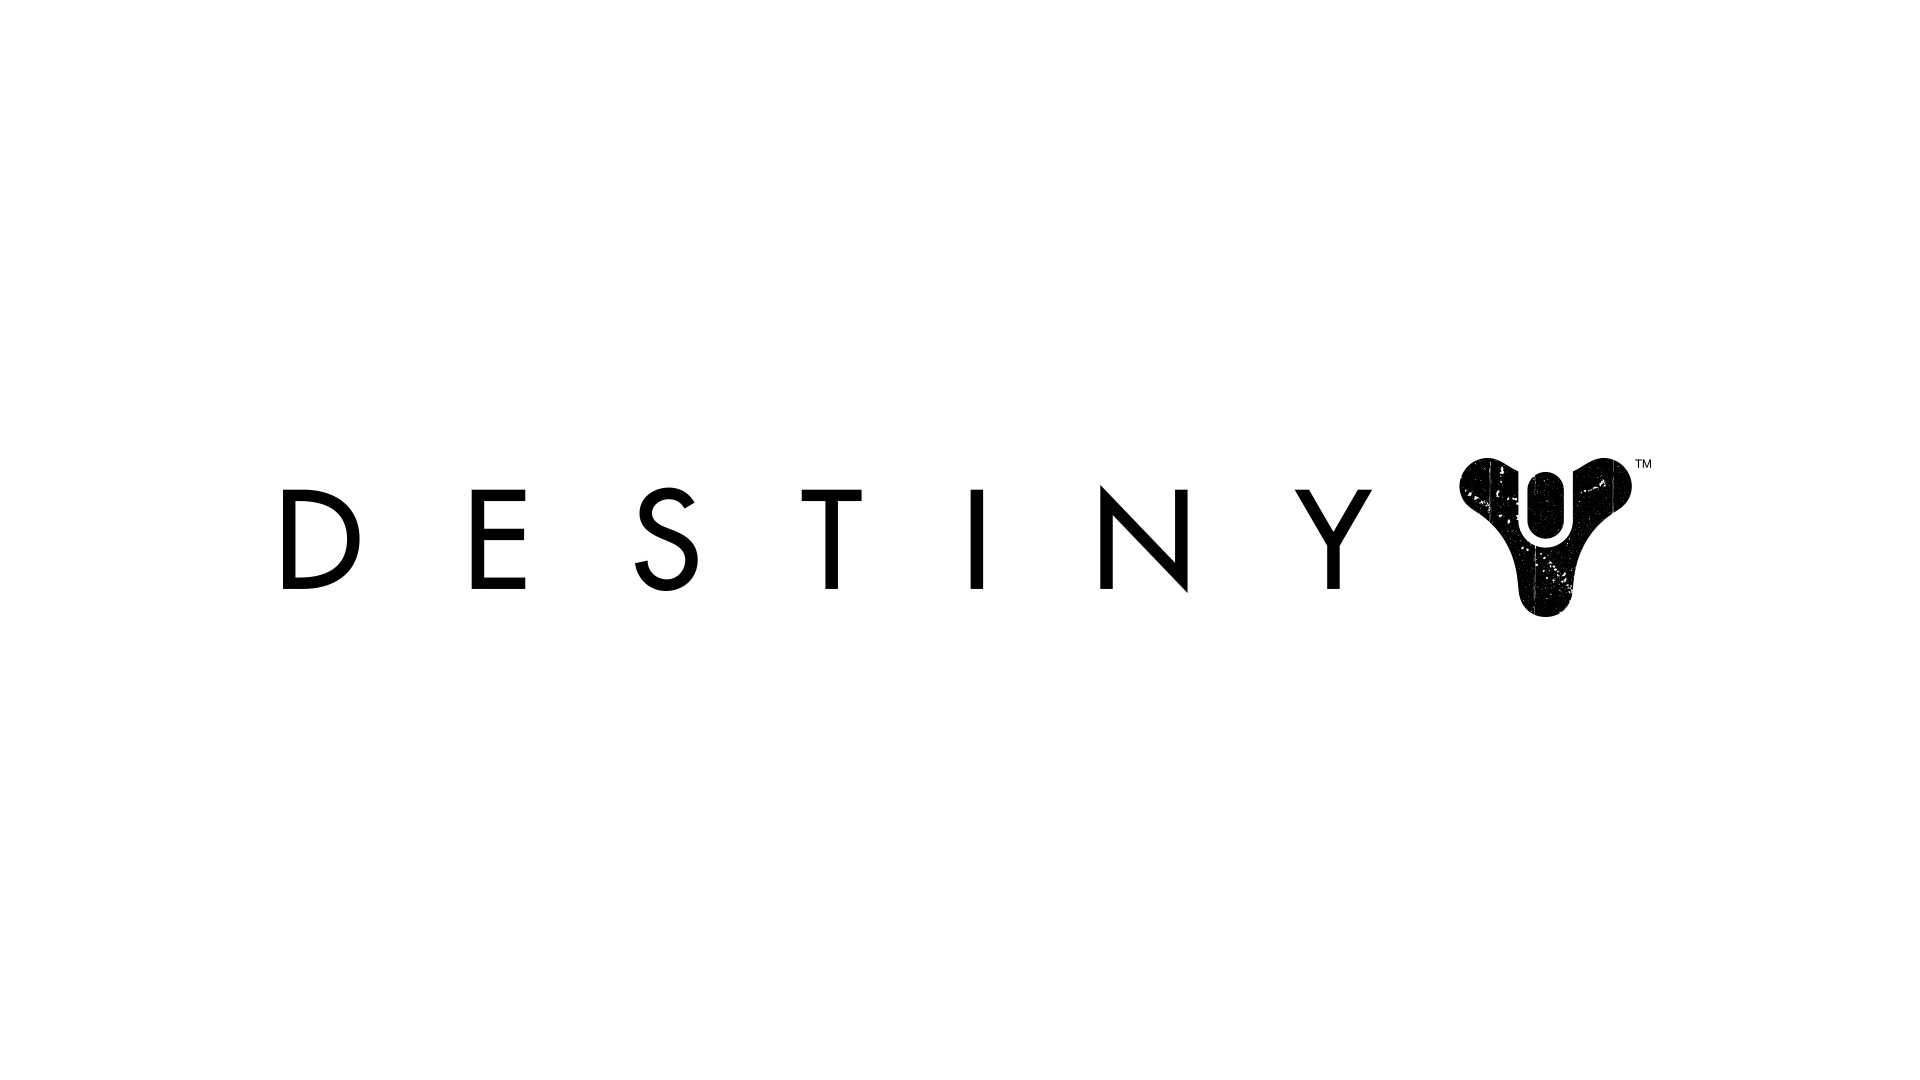 Bungie destiny logo wallpaper